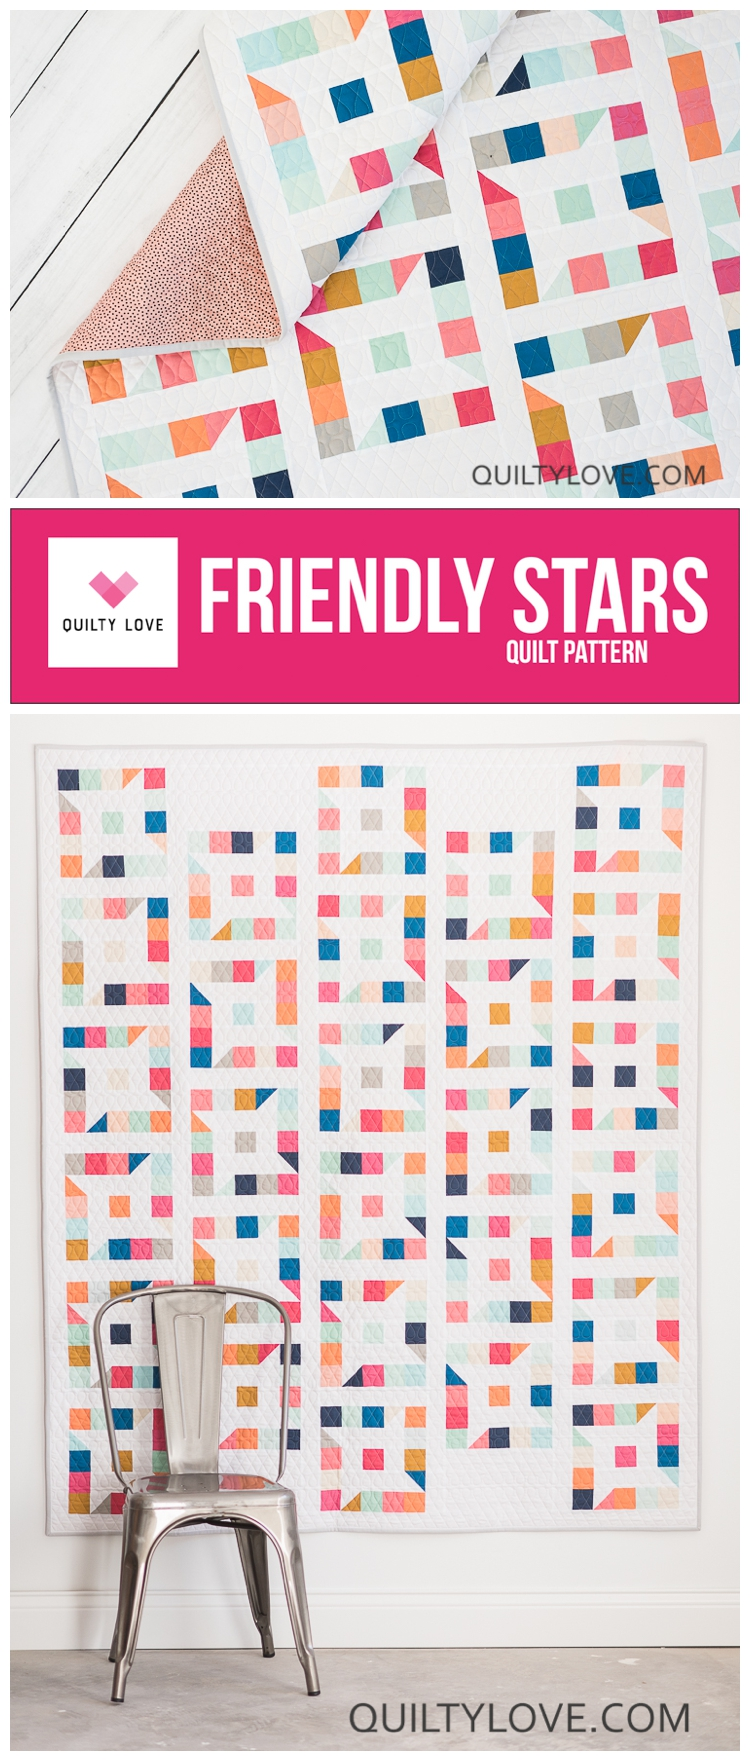 Friendly stars quilt pattern by Emily of quiltylove.com